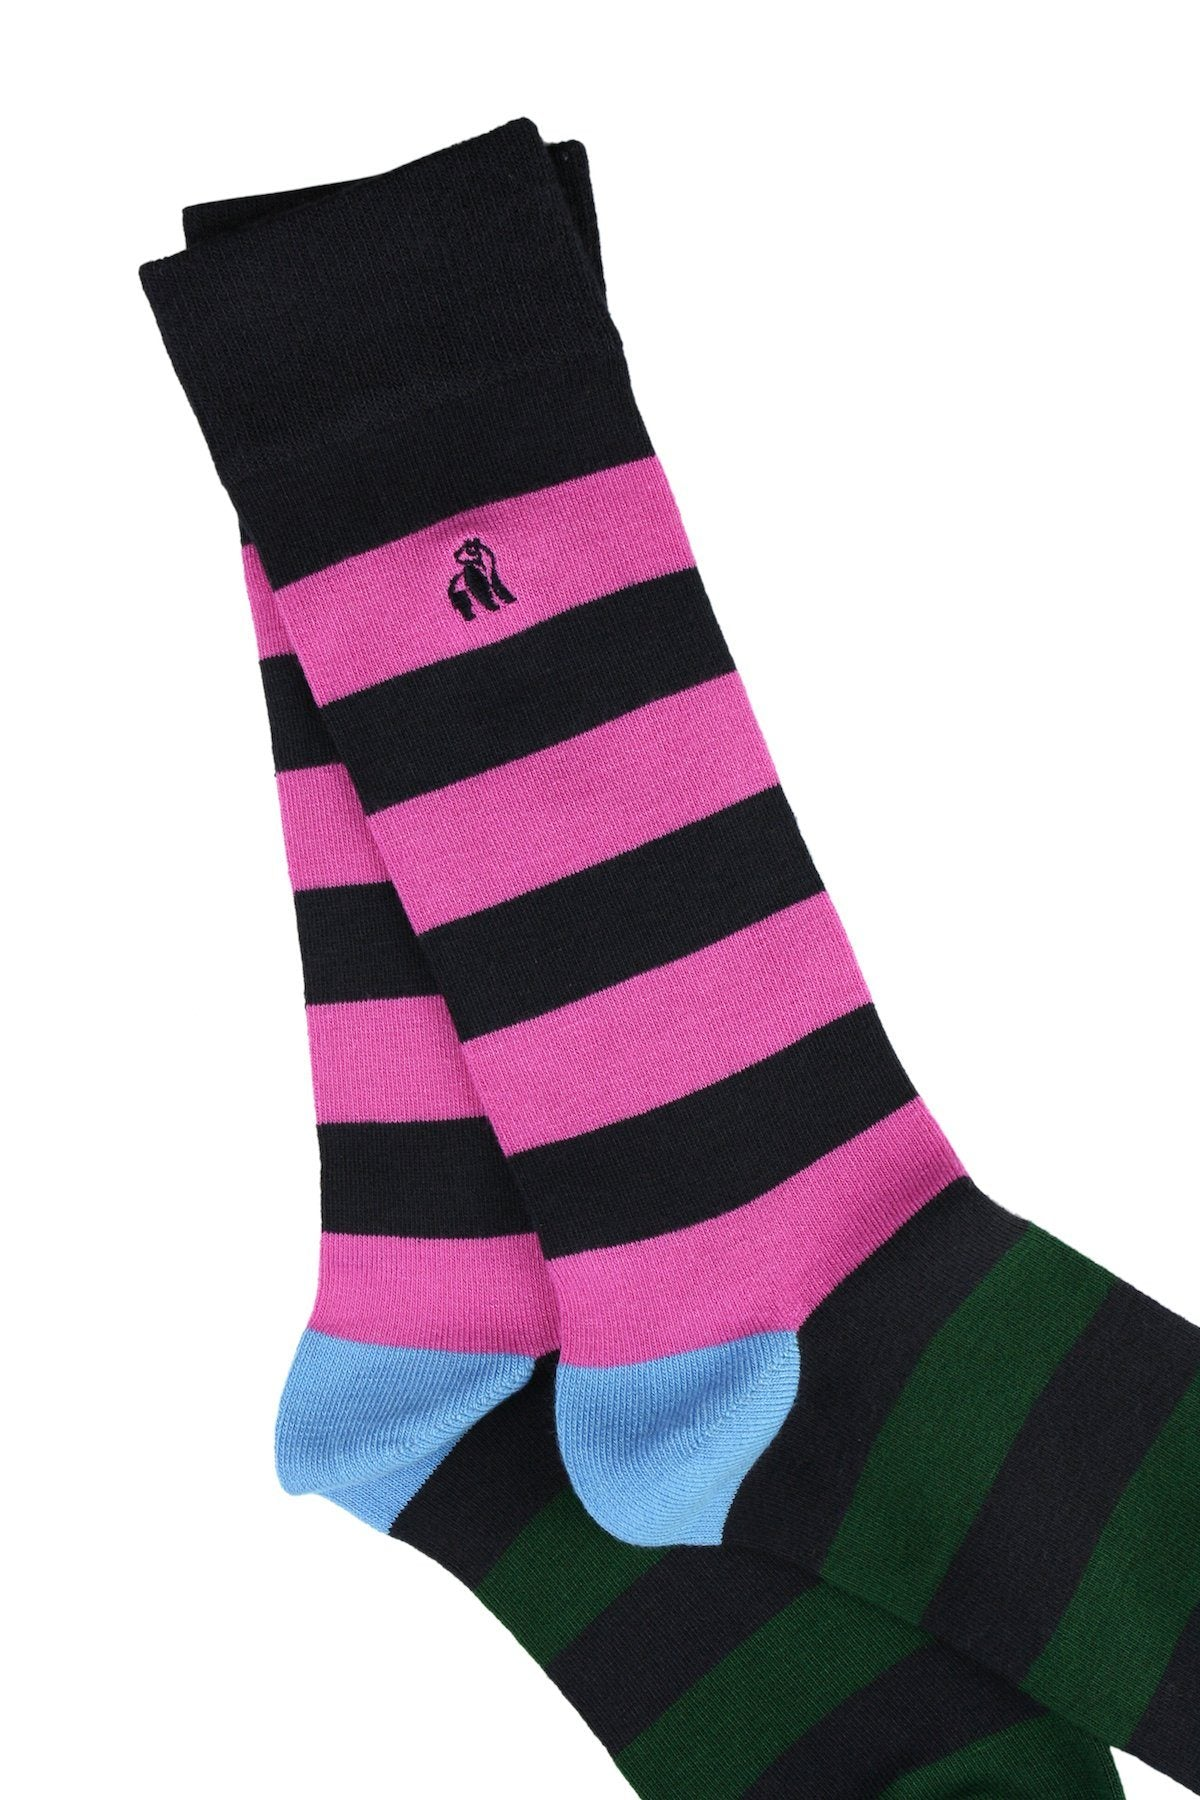 Pink, Blue and Green Striped Bamboo Socks